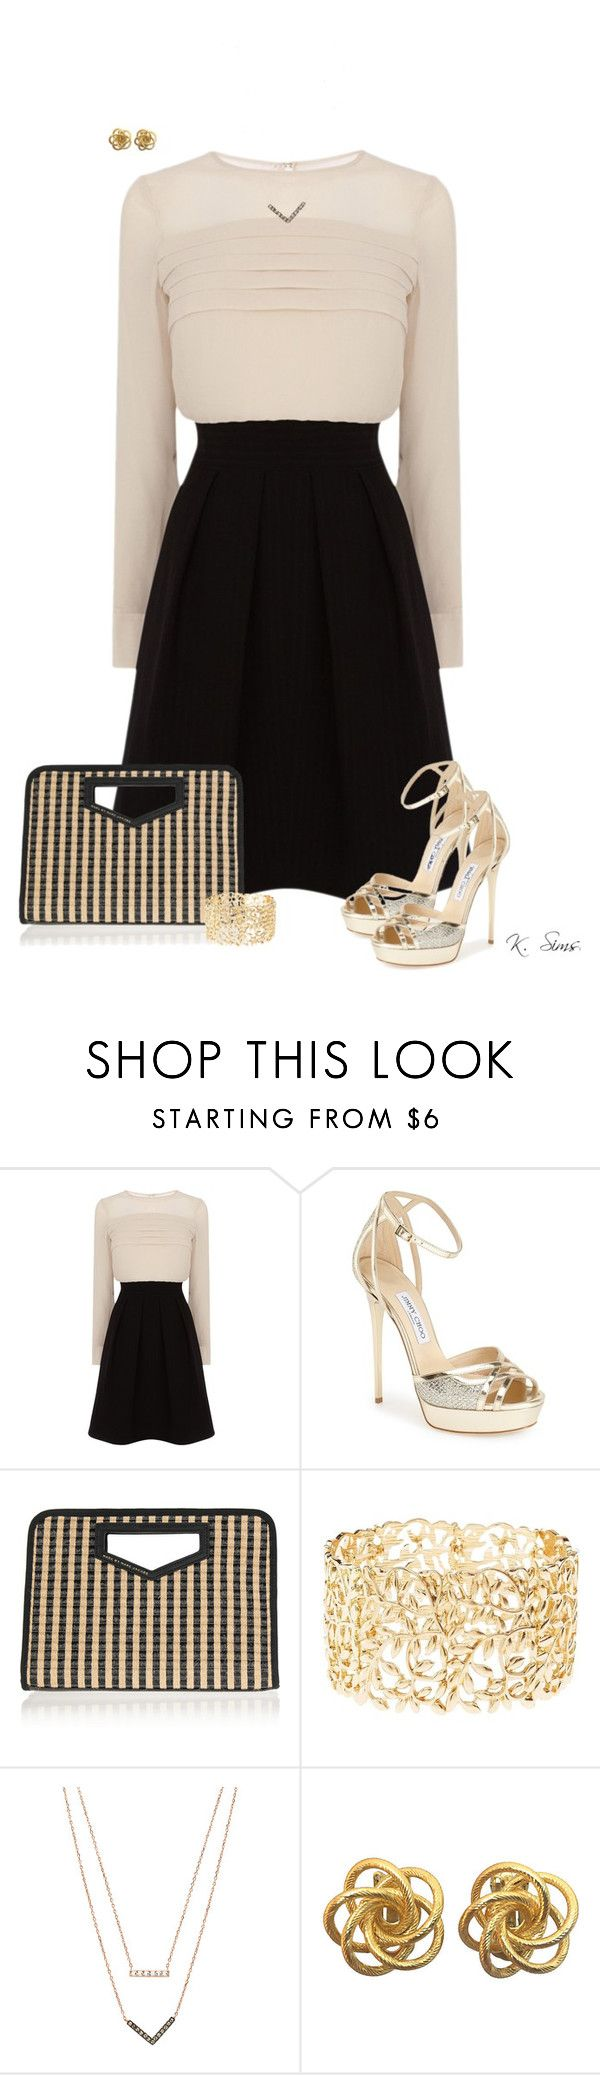 """""""Get dolled up and go out"""" by ksims-1 ❤ liked on Polyvore featuring Karen Millen, Jimmy Choo, Marc by Marc Jacobs, Charlotte Russe and Michael Kors"""